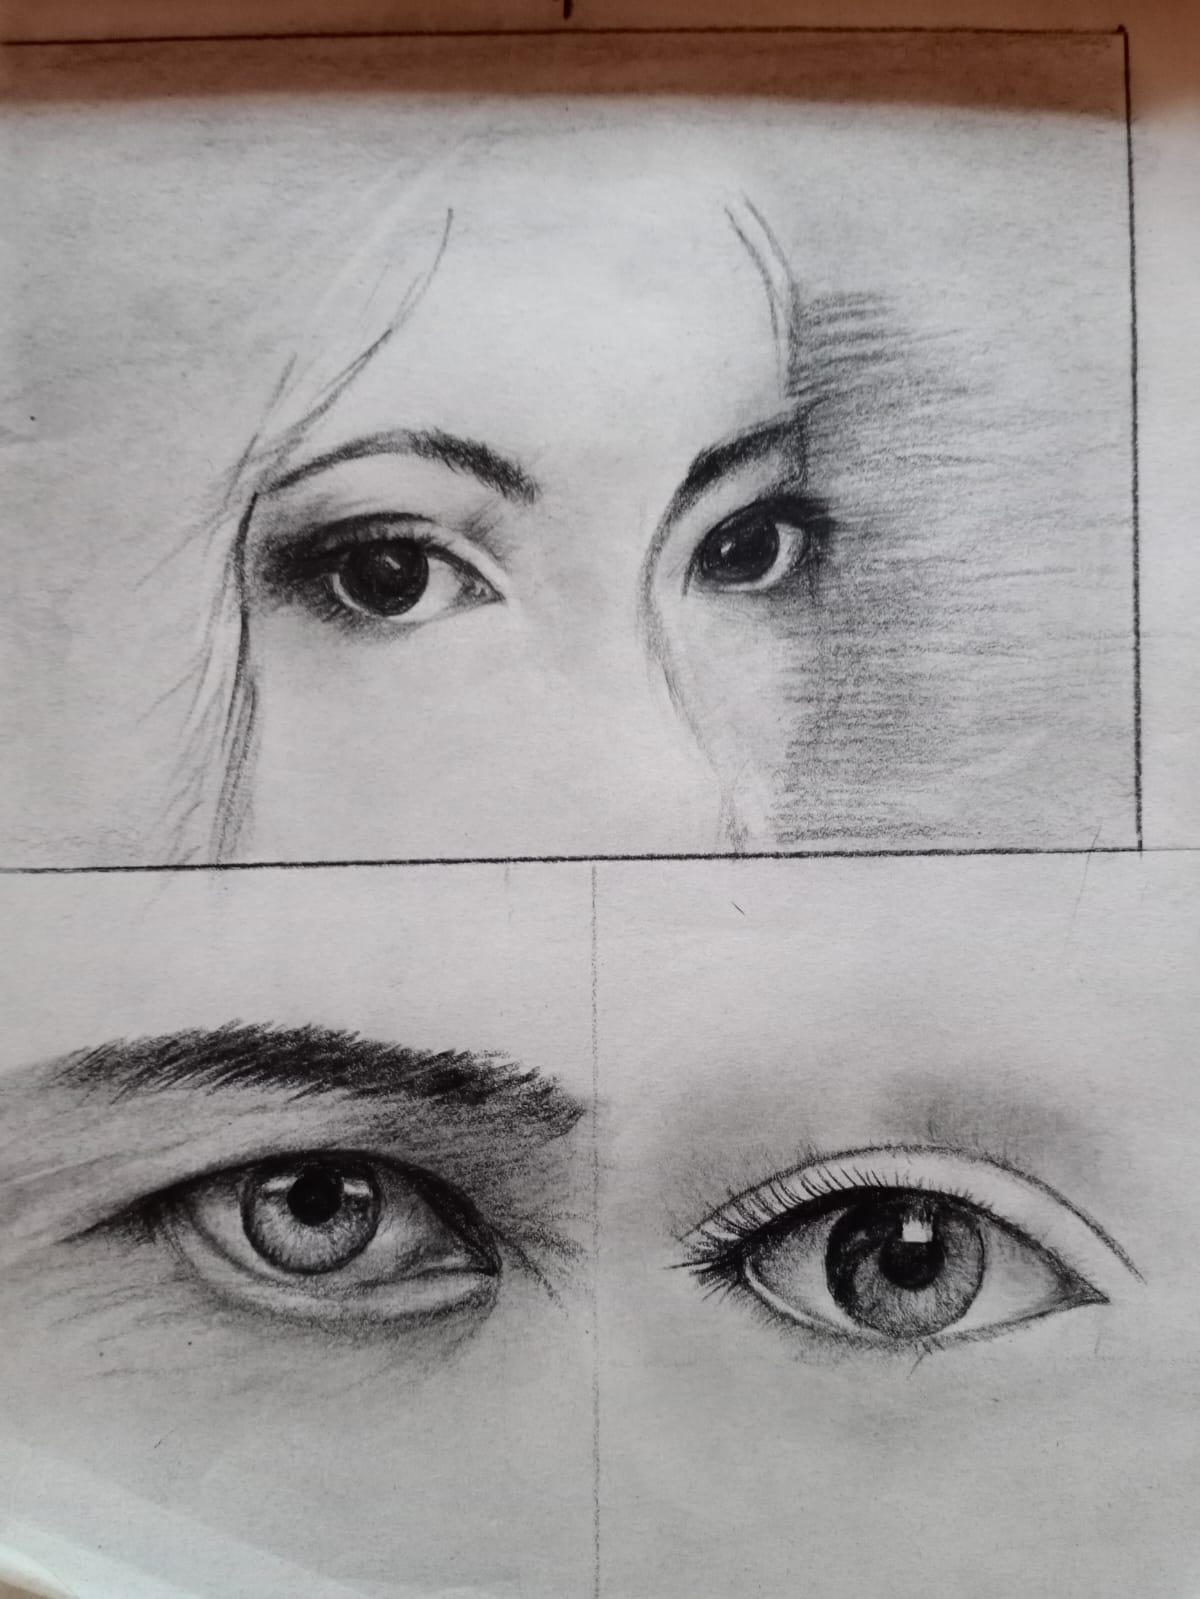 Post YOUR artwork here, cmon !!-whatsapp-image-2020-07-07-15-a